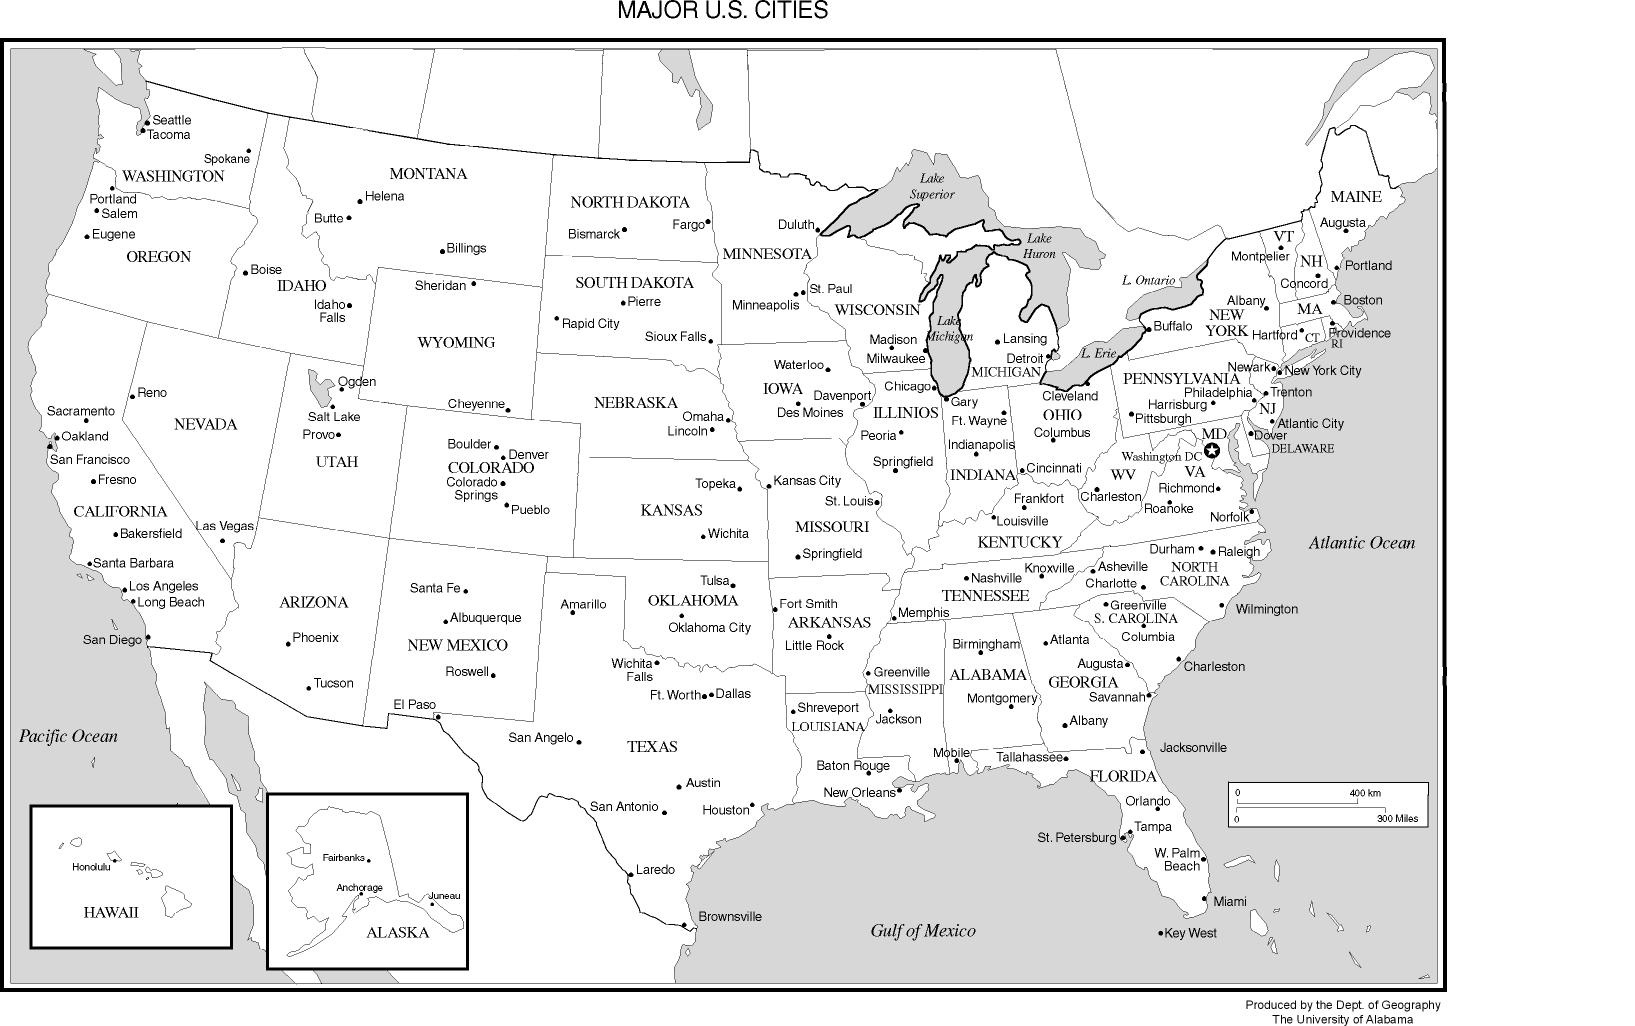 United States Labeled Map - Free Printable Labeled Map Of The United States